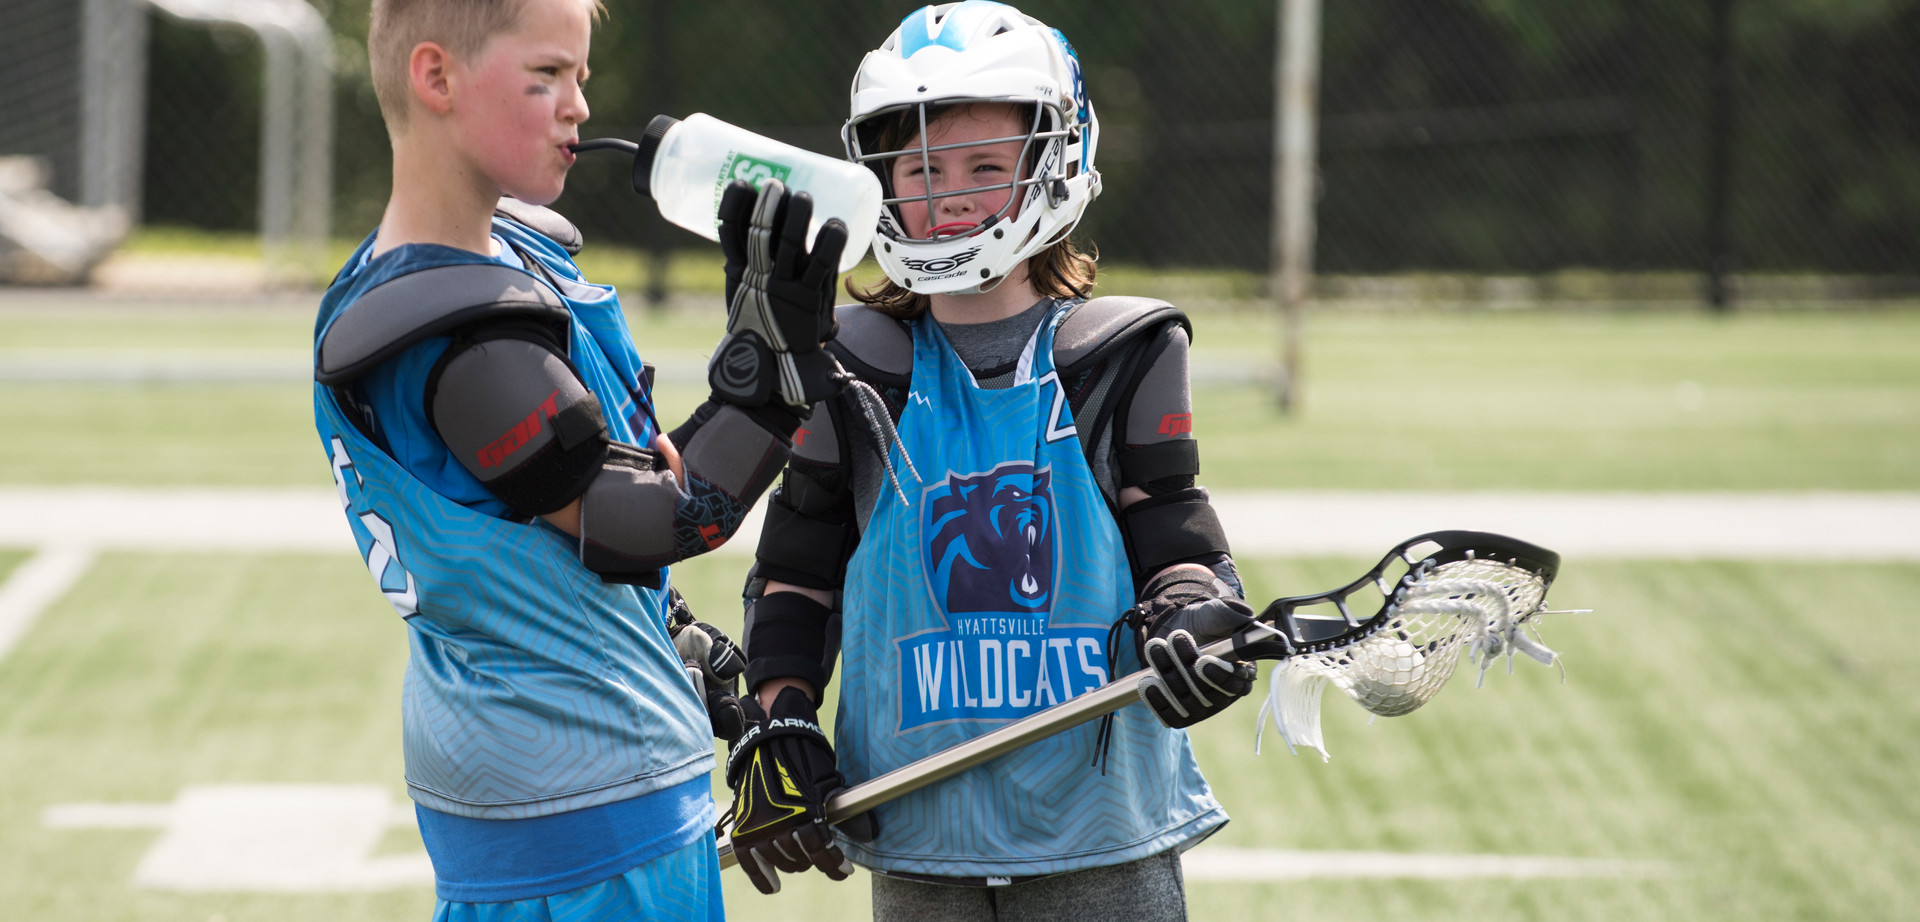 walker-mill-lacrosse-18-06_43132463762_o